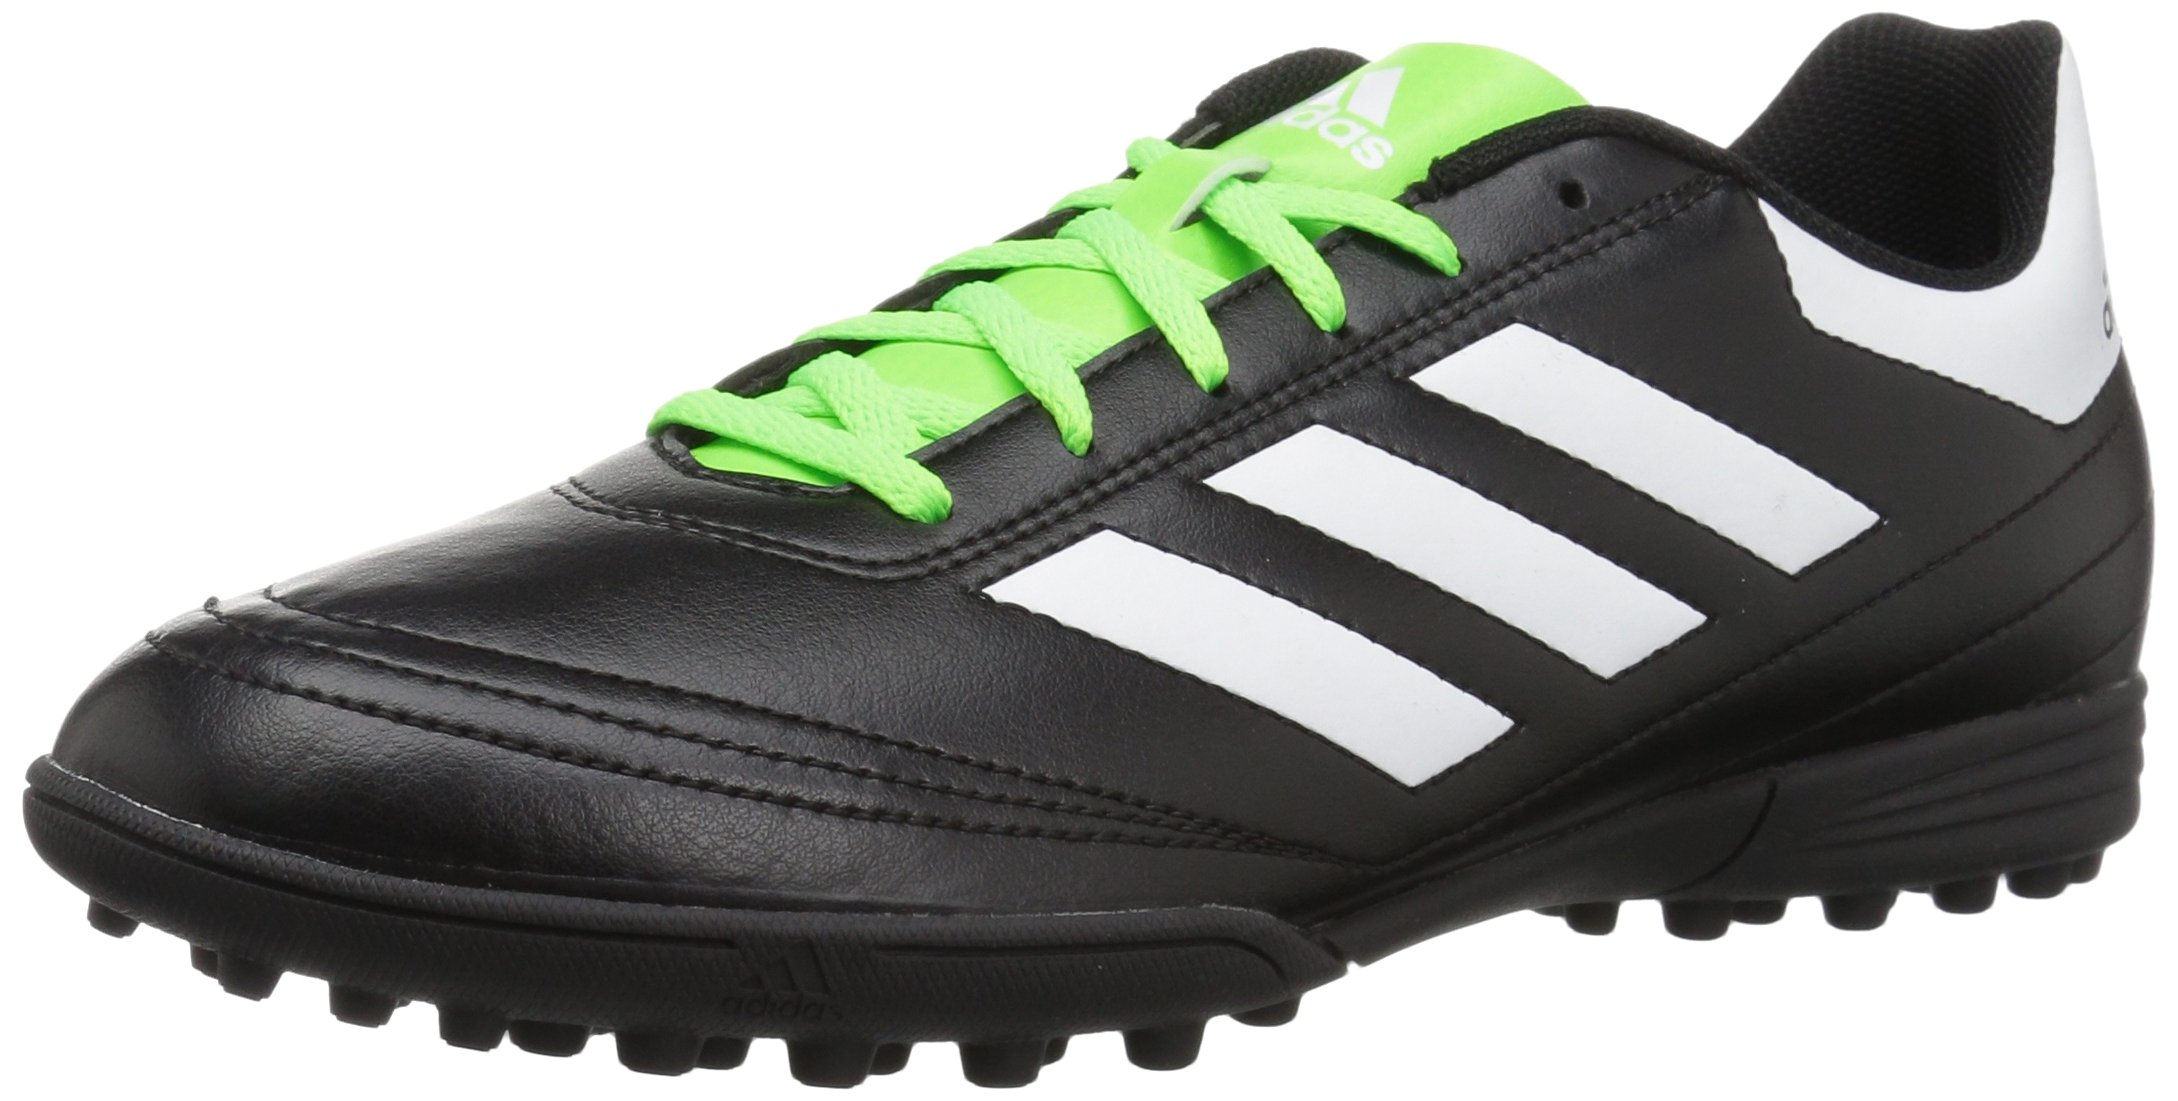 adidas Men's Goletto VI TF Soccer Shoe, Black/White/Solar Green, 8.5 M US by adidas